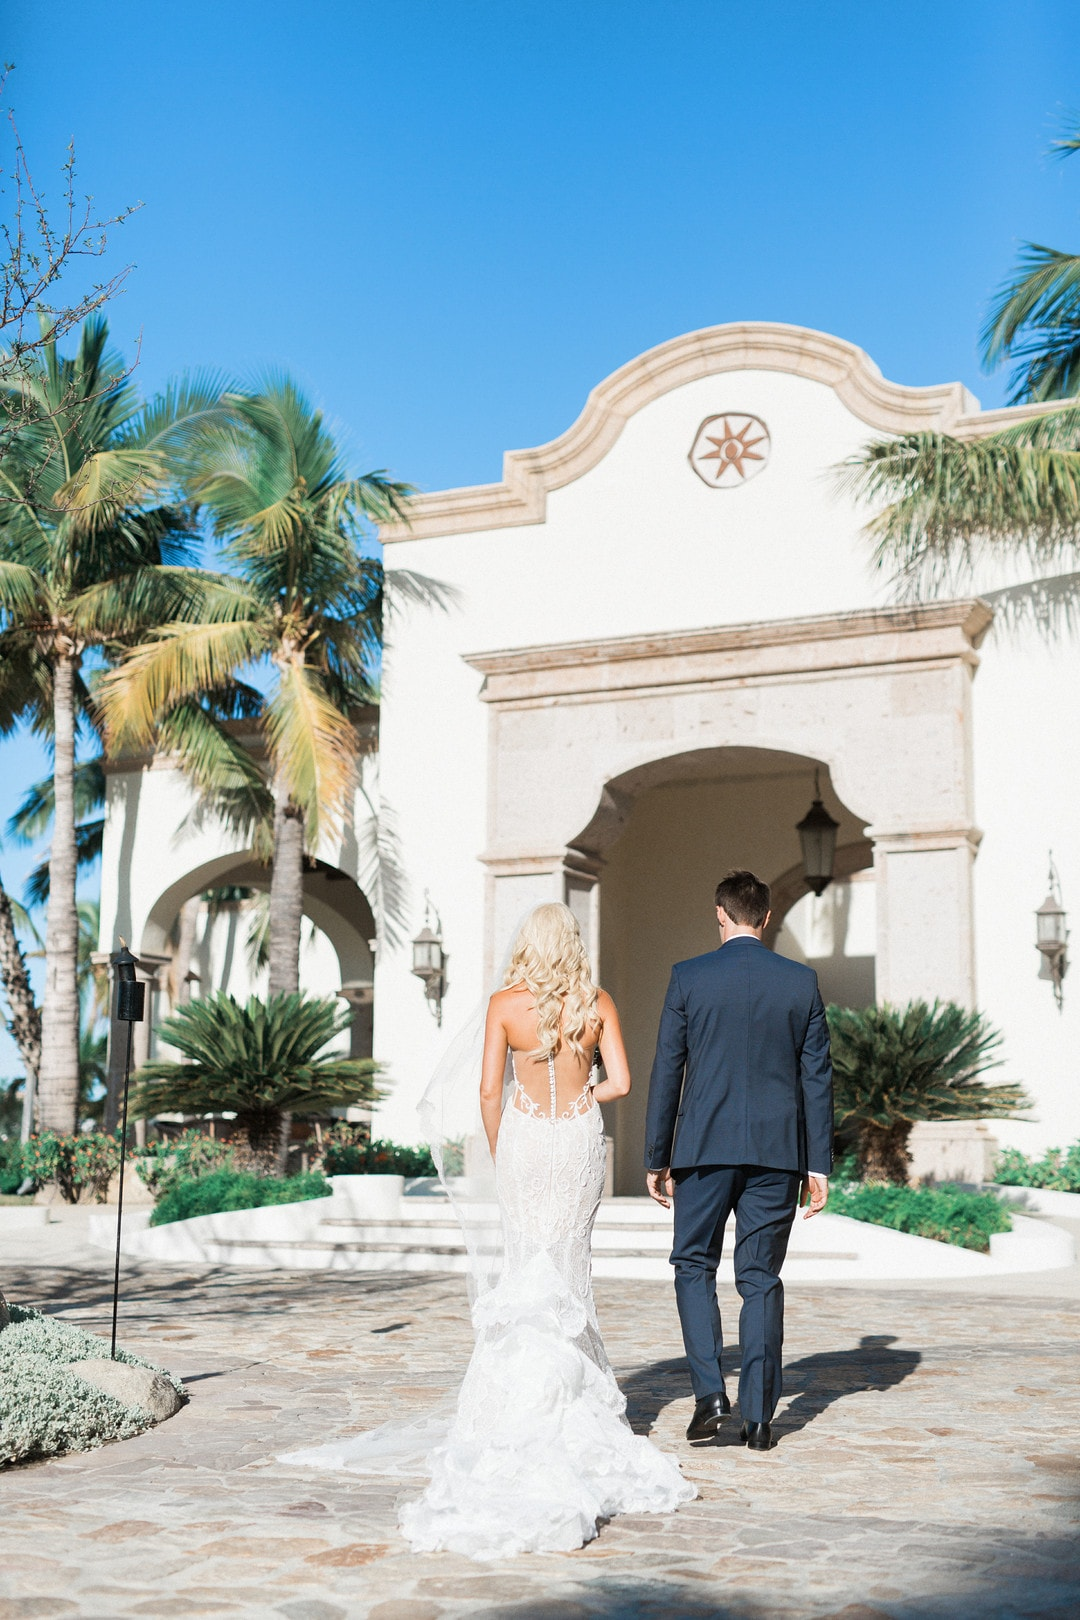 Destination Wedding Magic In Cabo San Lucas, Mexico, Photography by Gideon Photography for Destination Wedding Blog Adriana Weddings